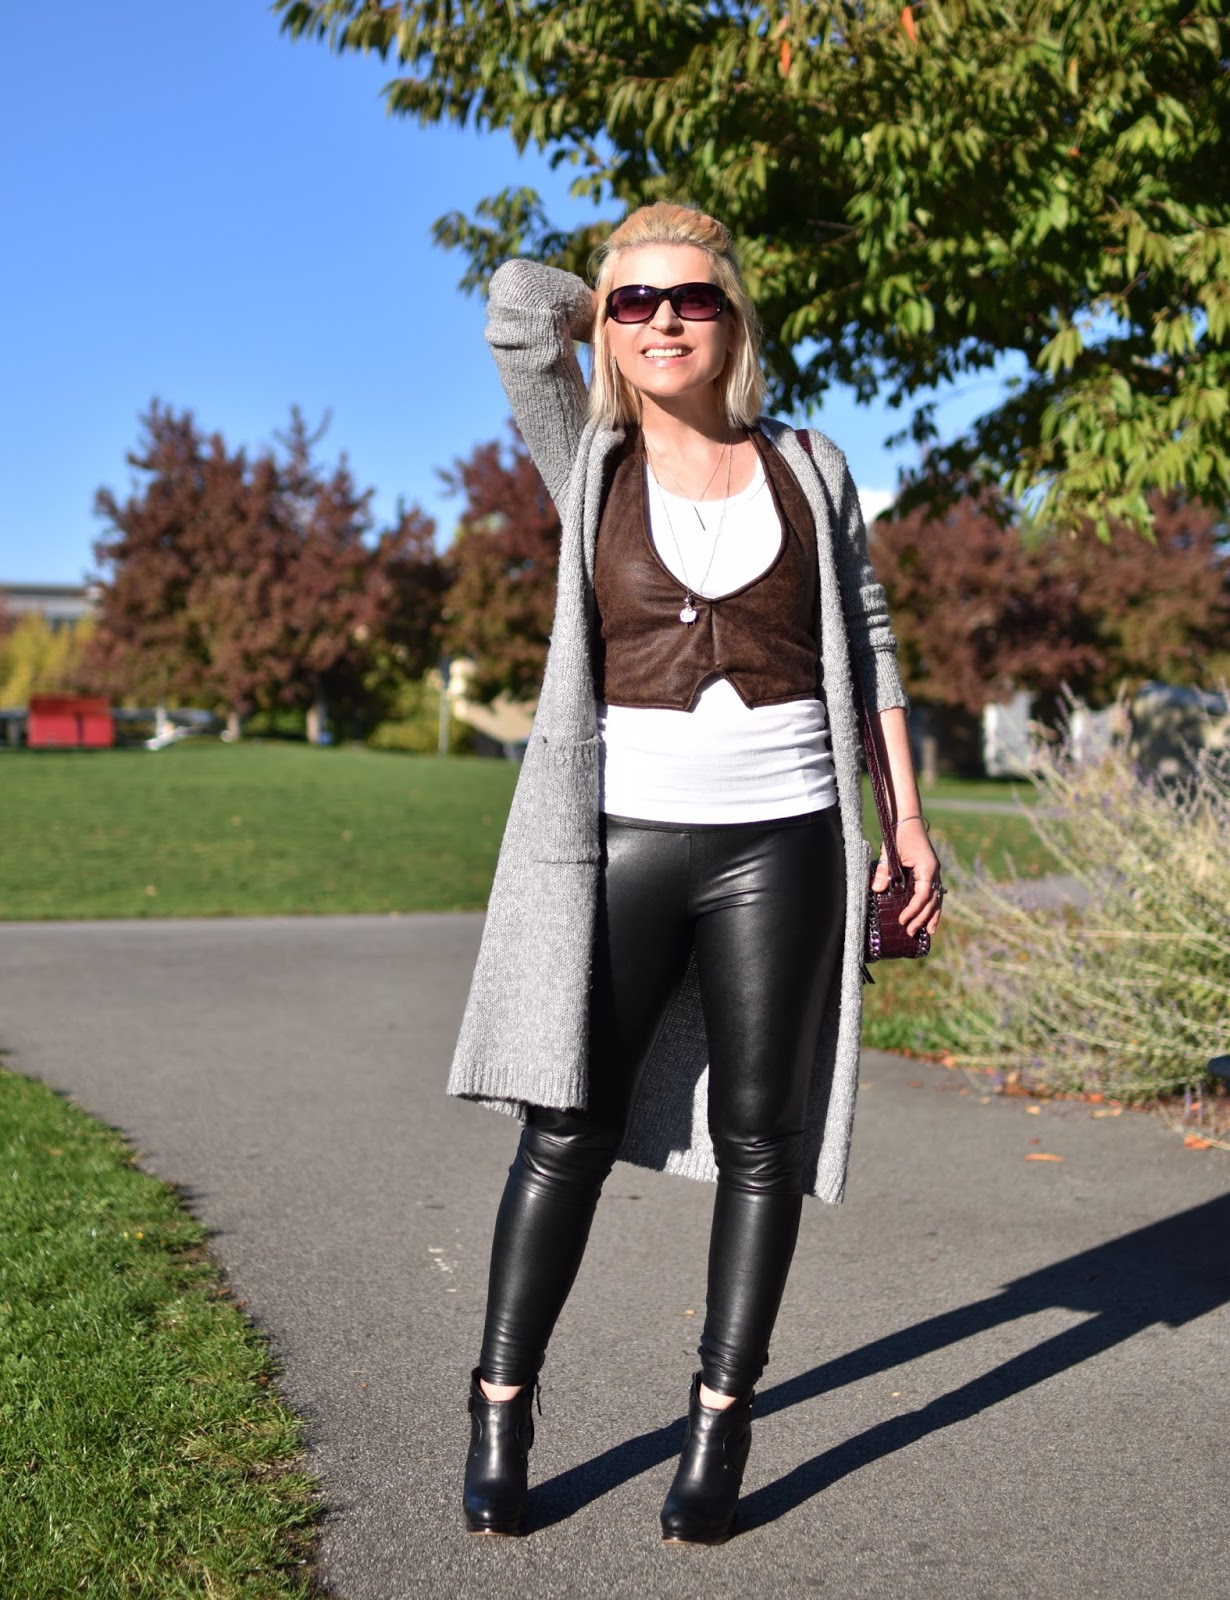 Outfit inspiration c/o Monika Faulkner - vegan leather vest and leggings with wedge booties and a long cardigan